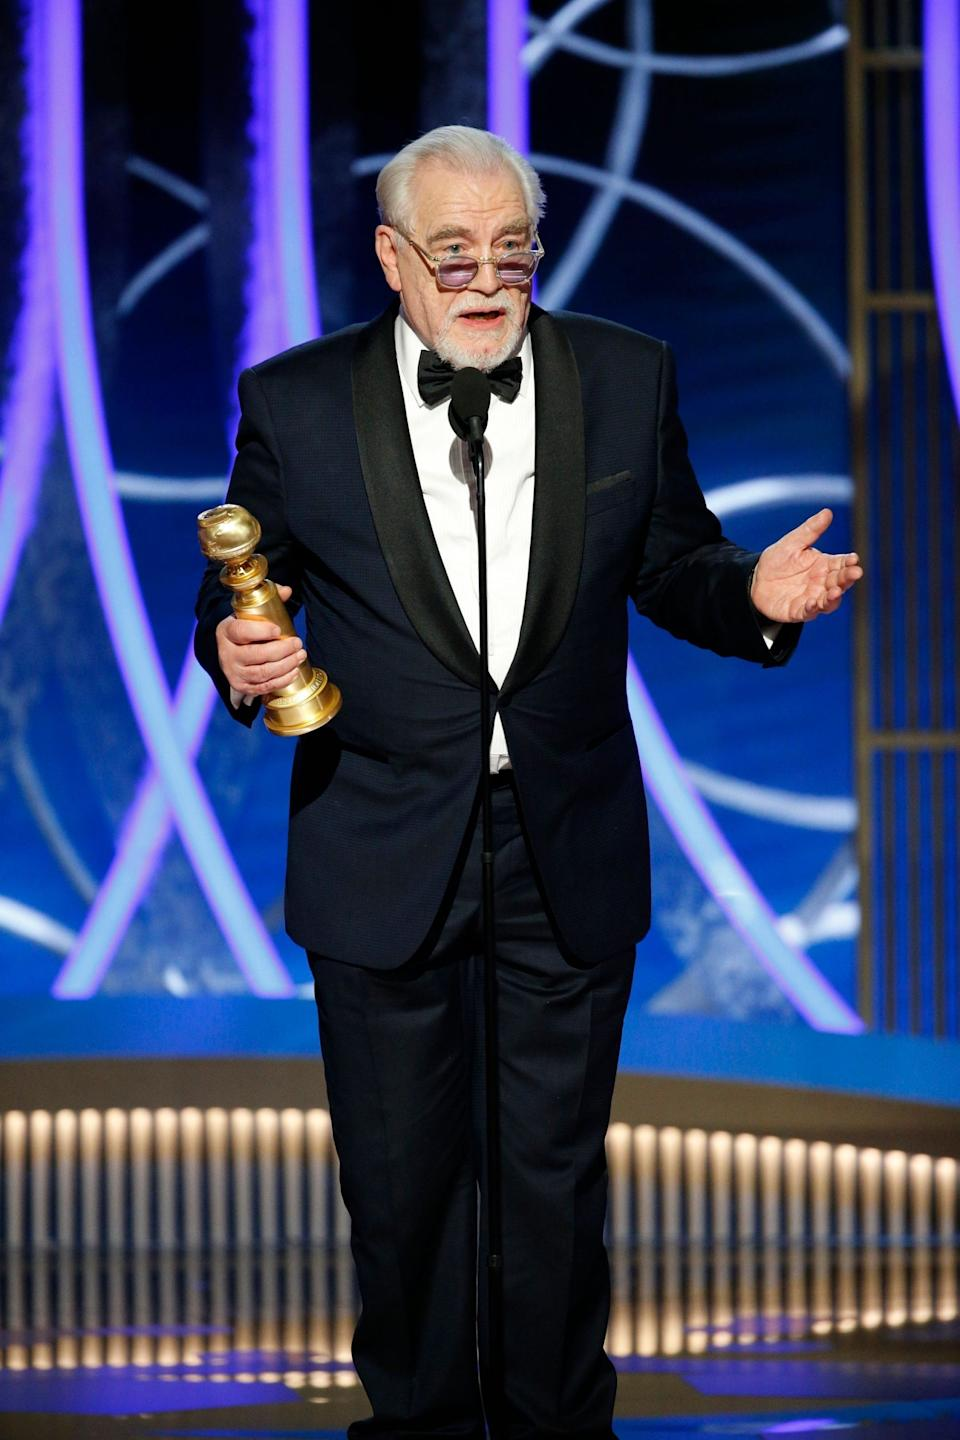 Cox won a Golden Globe for his role in Succession last month (REUTERS)